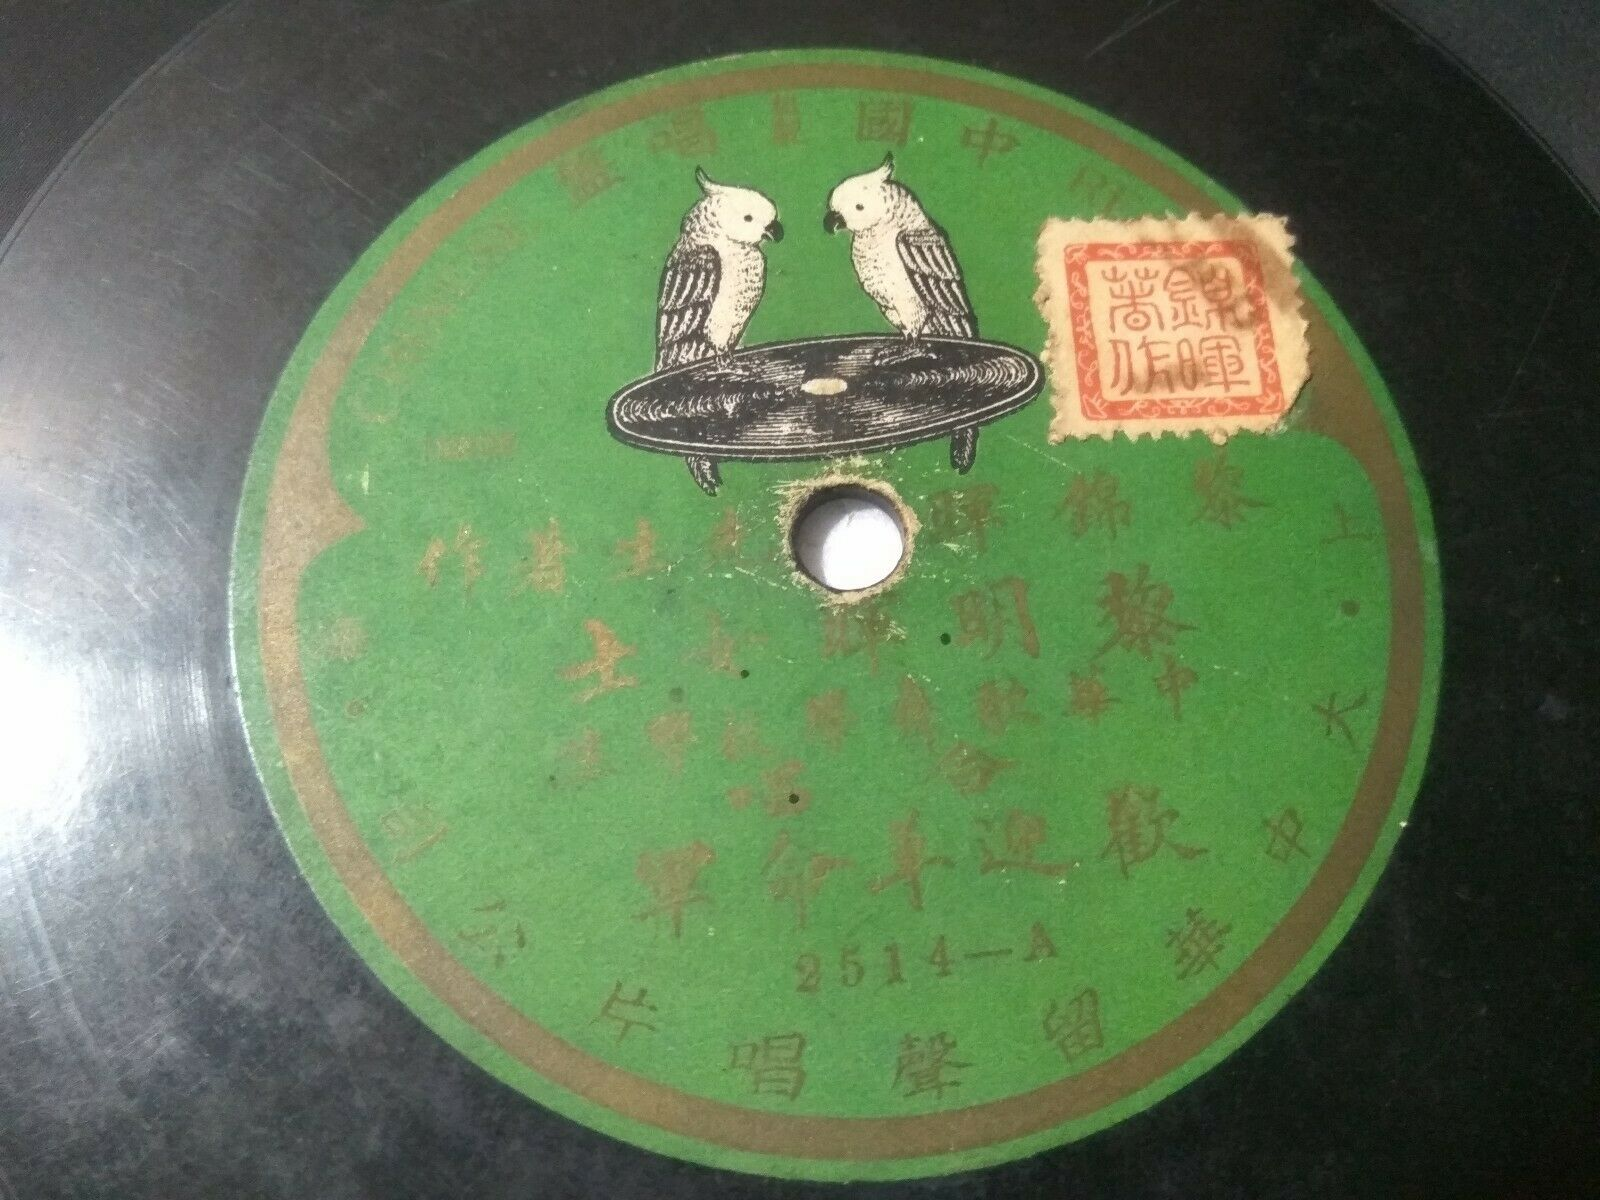 """Chinese Record 2514 - Green Parrot - 78rpm 10"""" shellac"""